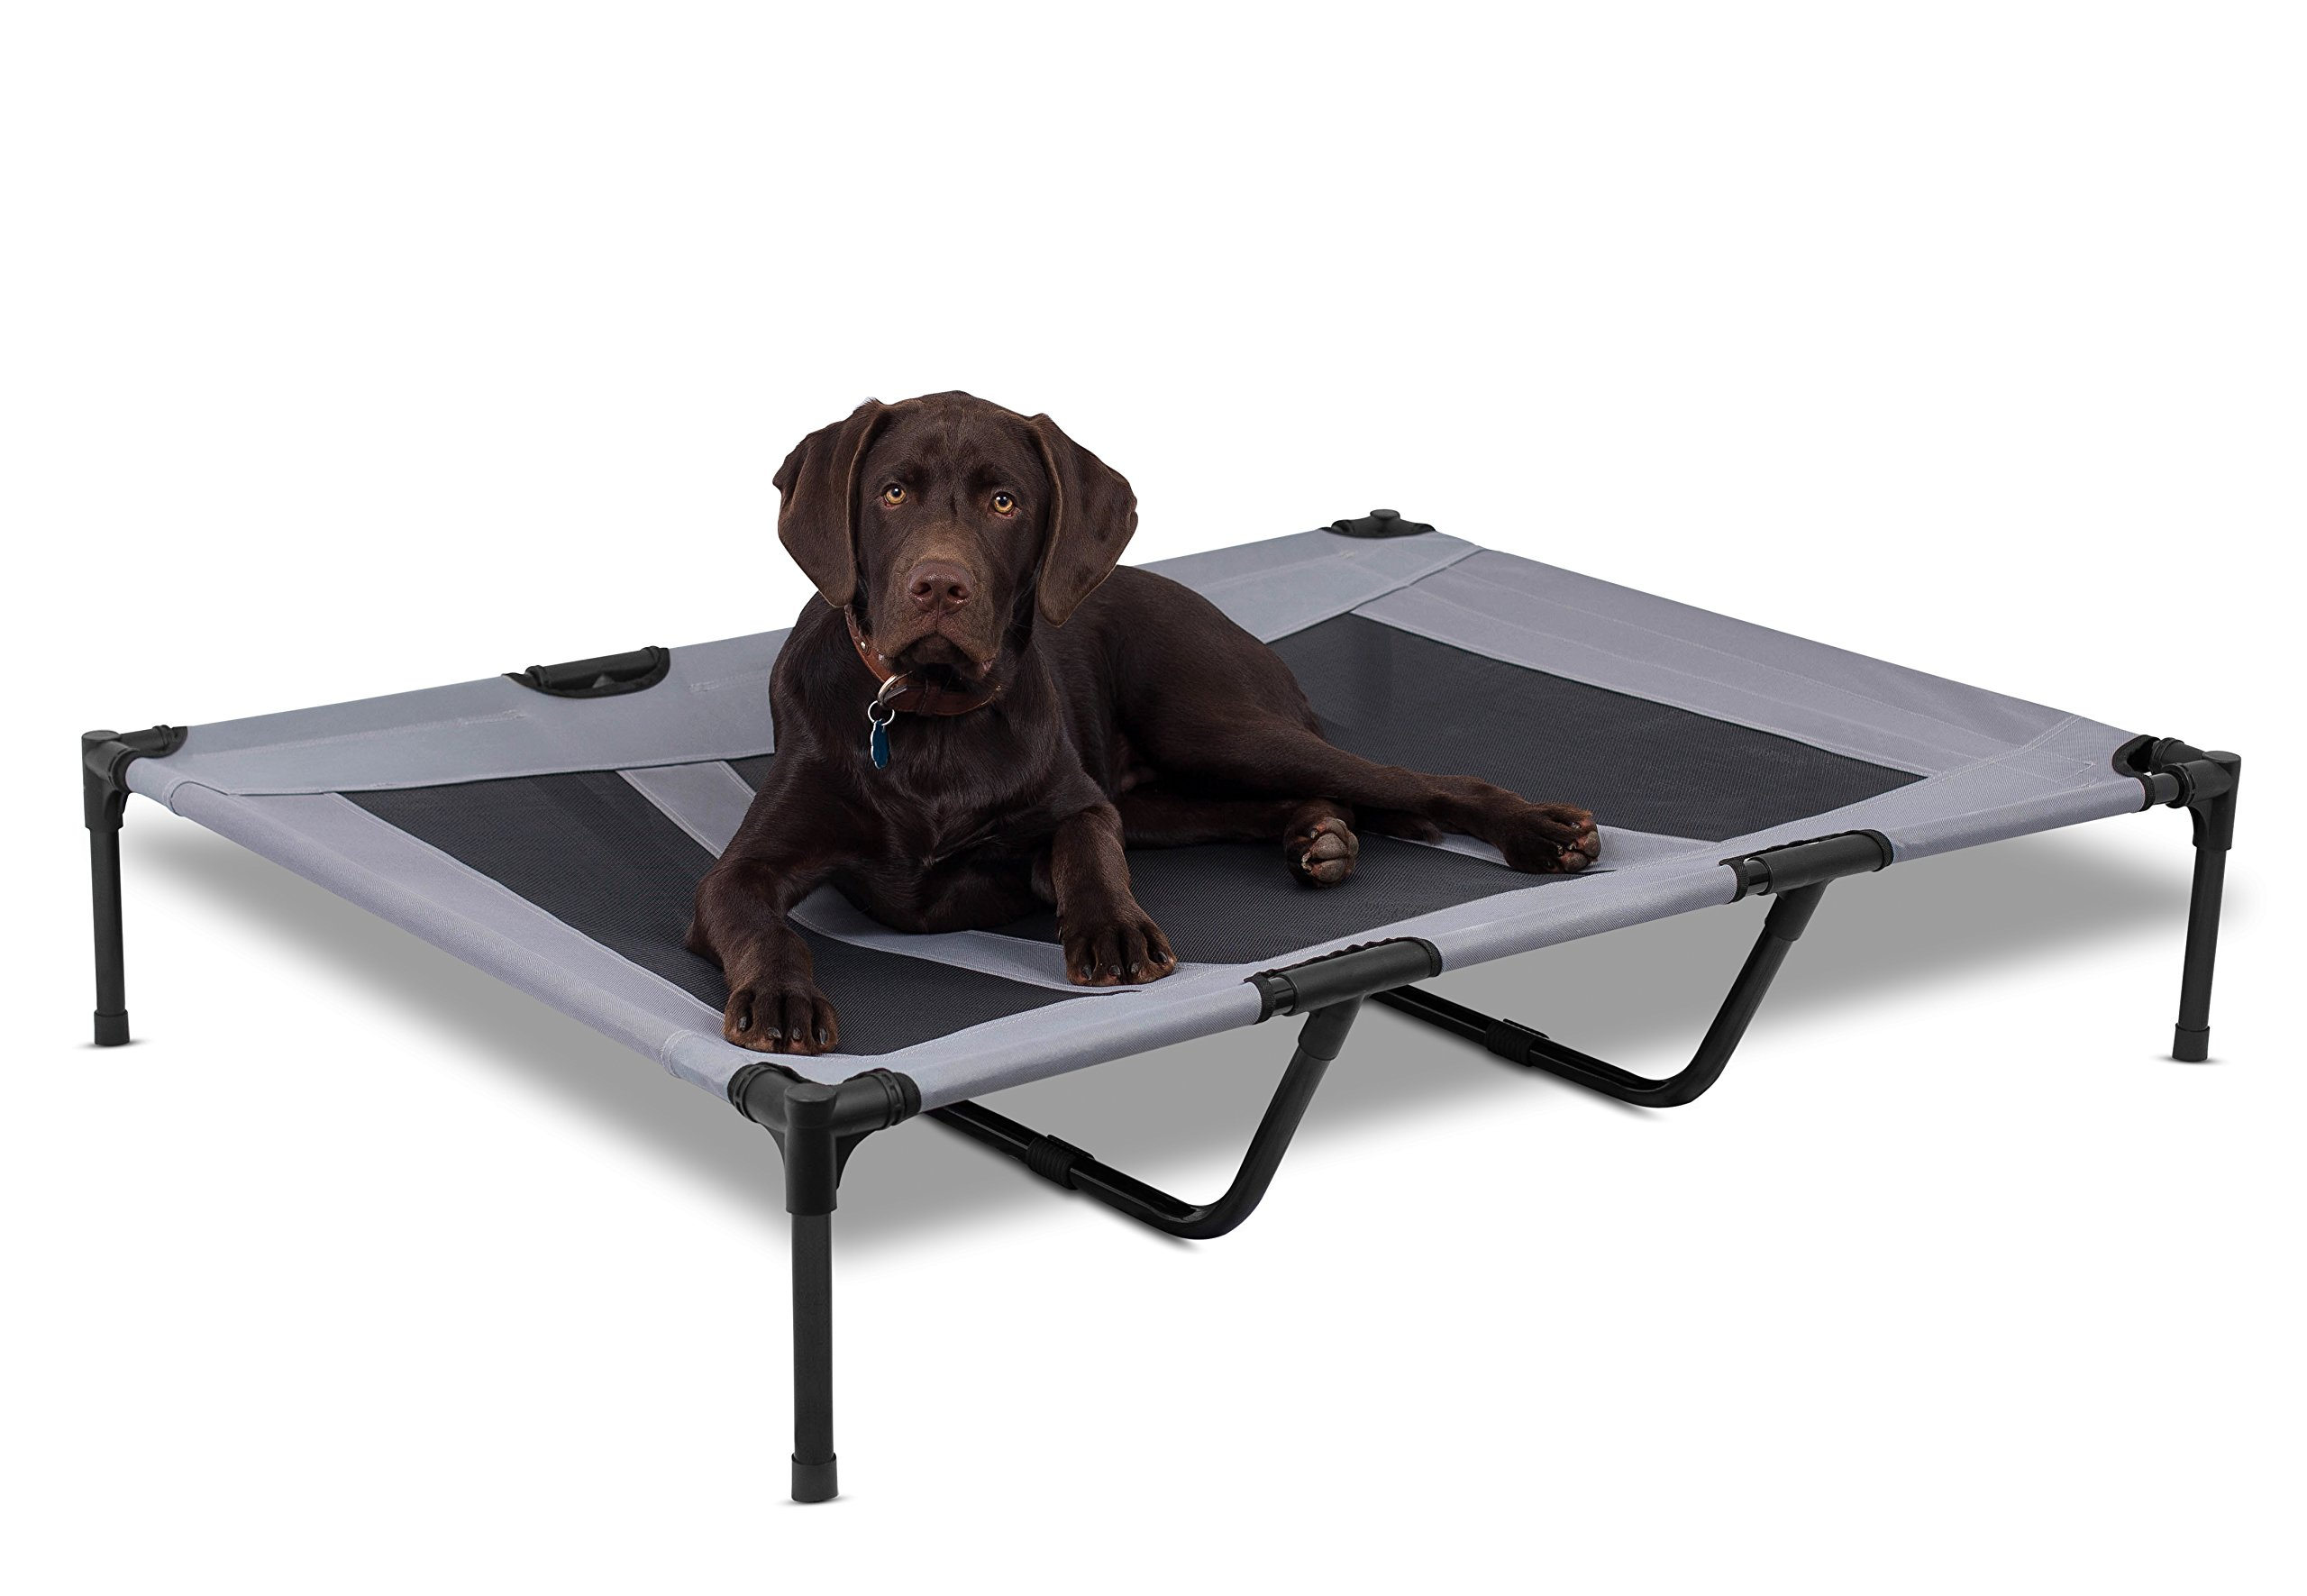 BIRDROCK HOME Internet's Best Dog Cot | 48 x 36 | Elevated Dog Bed | Cool Breathable Mesh | Indoor or Outdoor Use | Large | Grey